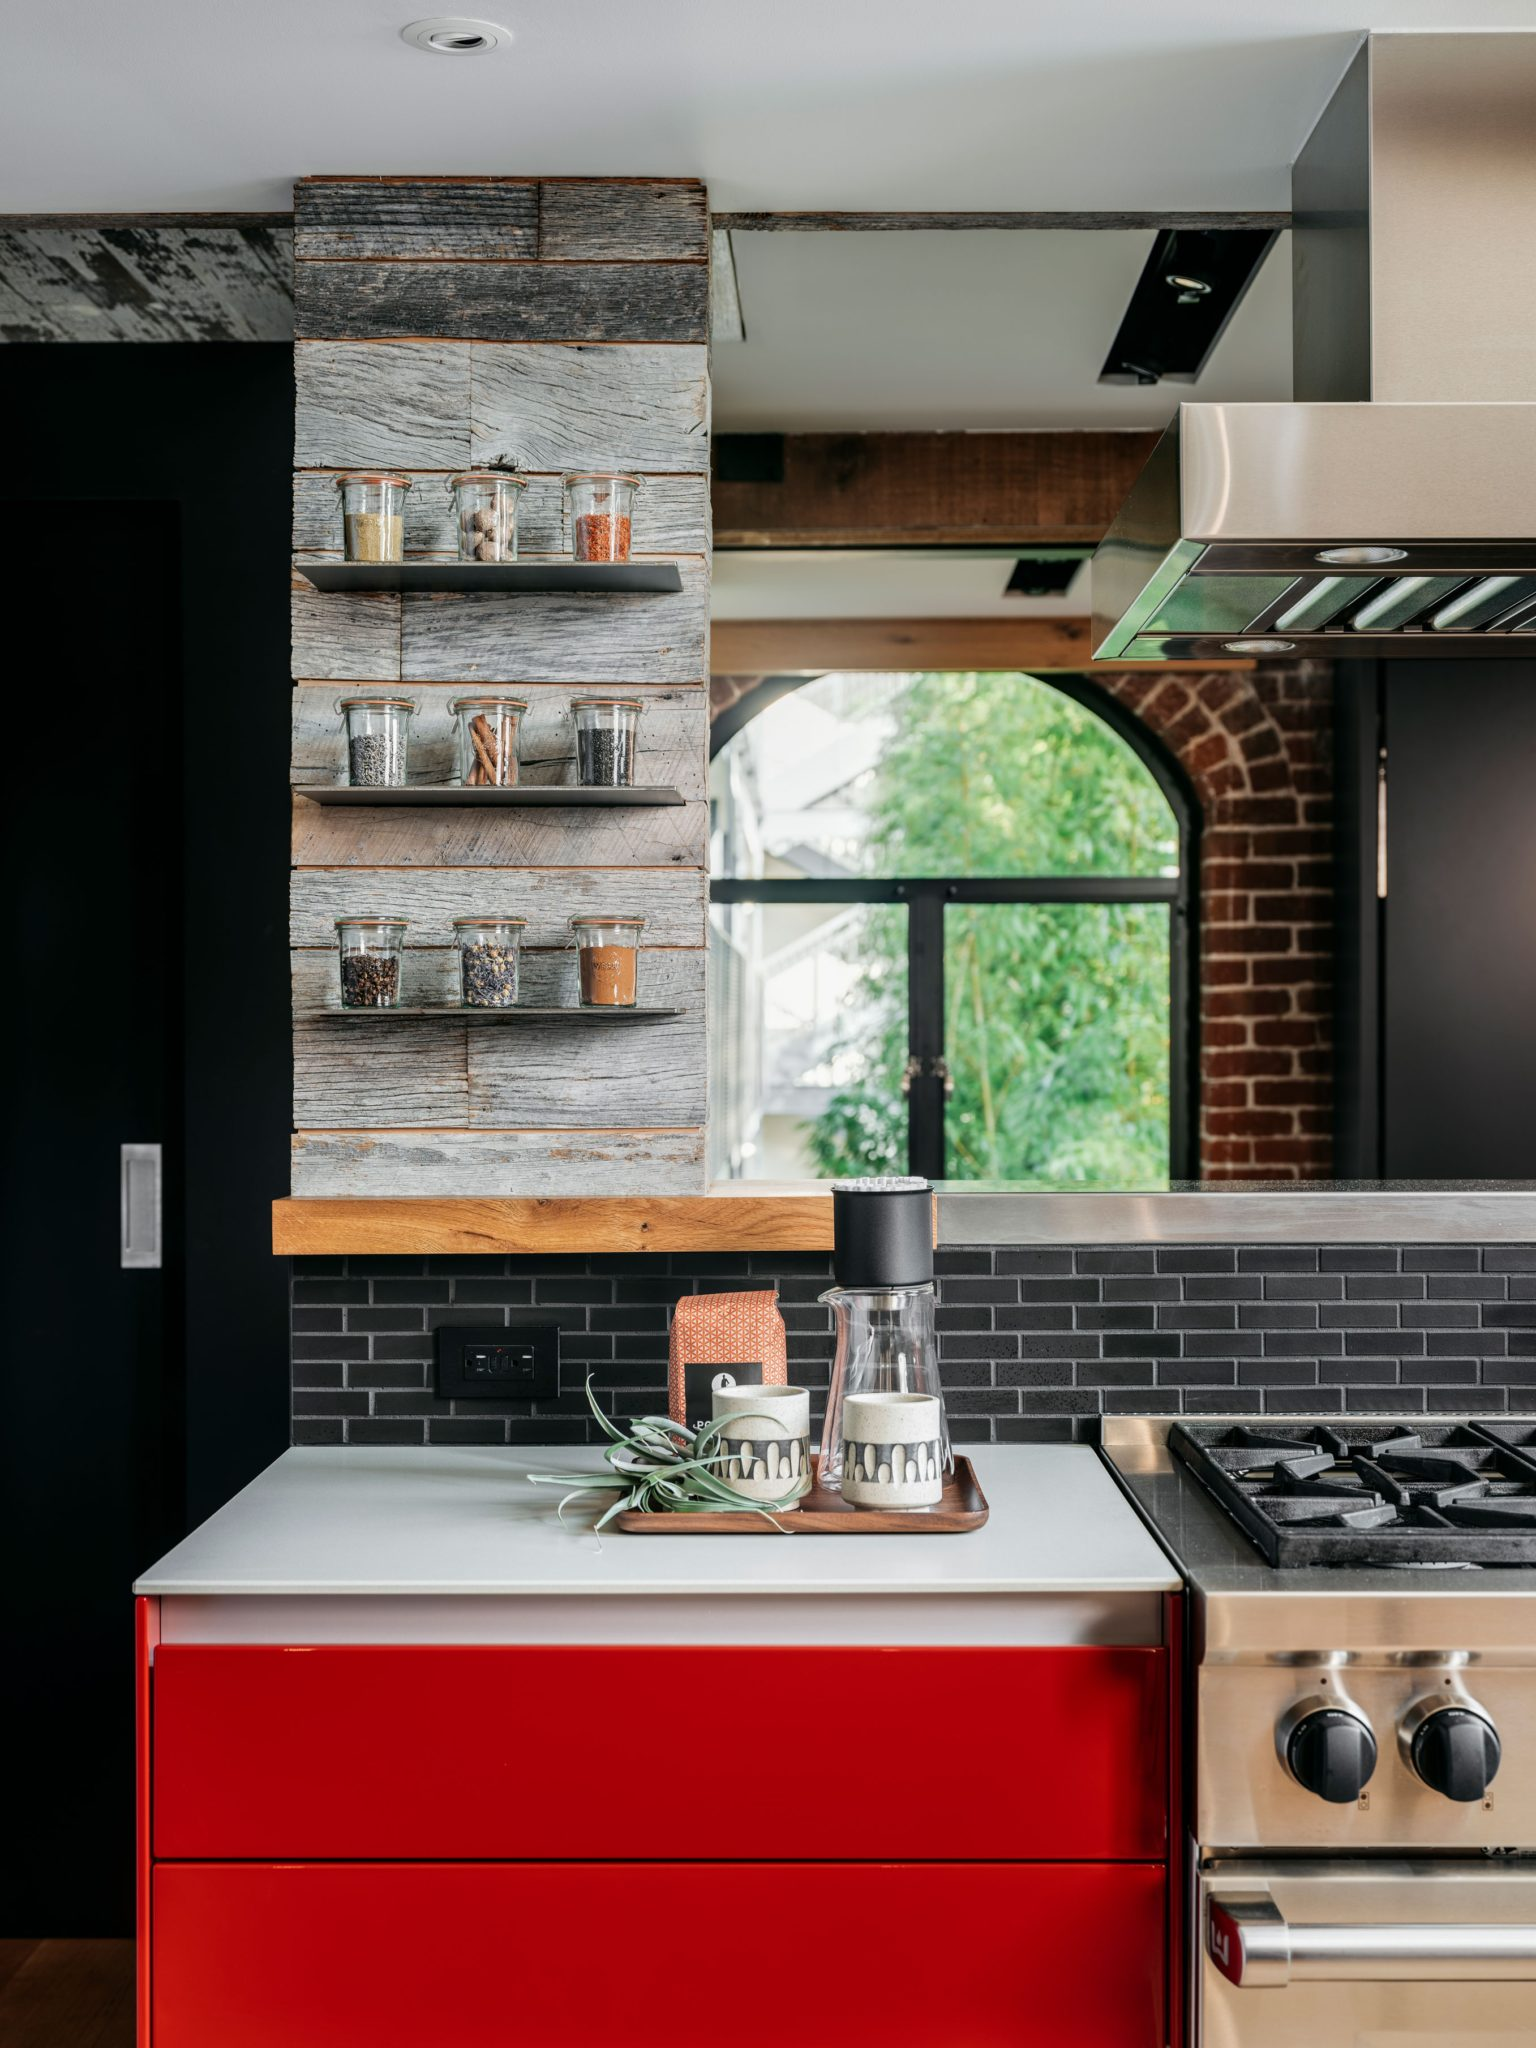 Mixed materials give the kitchen an eclectic personality. The tile backsplash here is from Heath Ceramics.